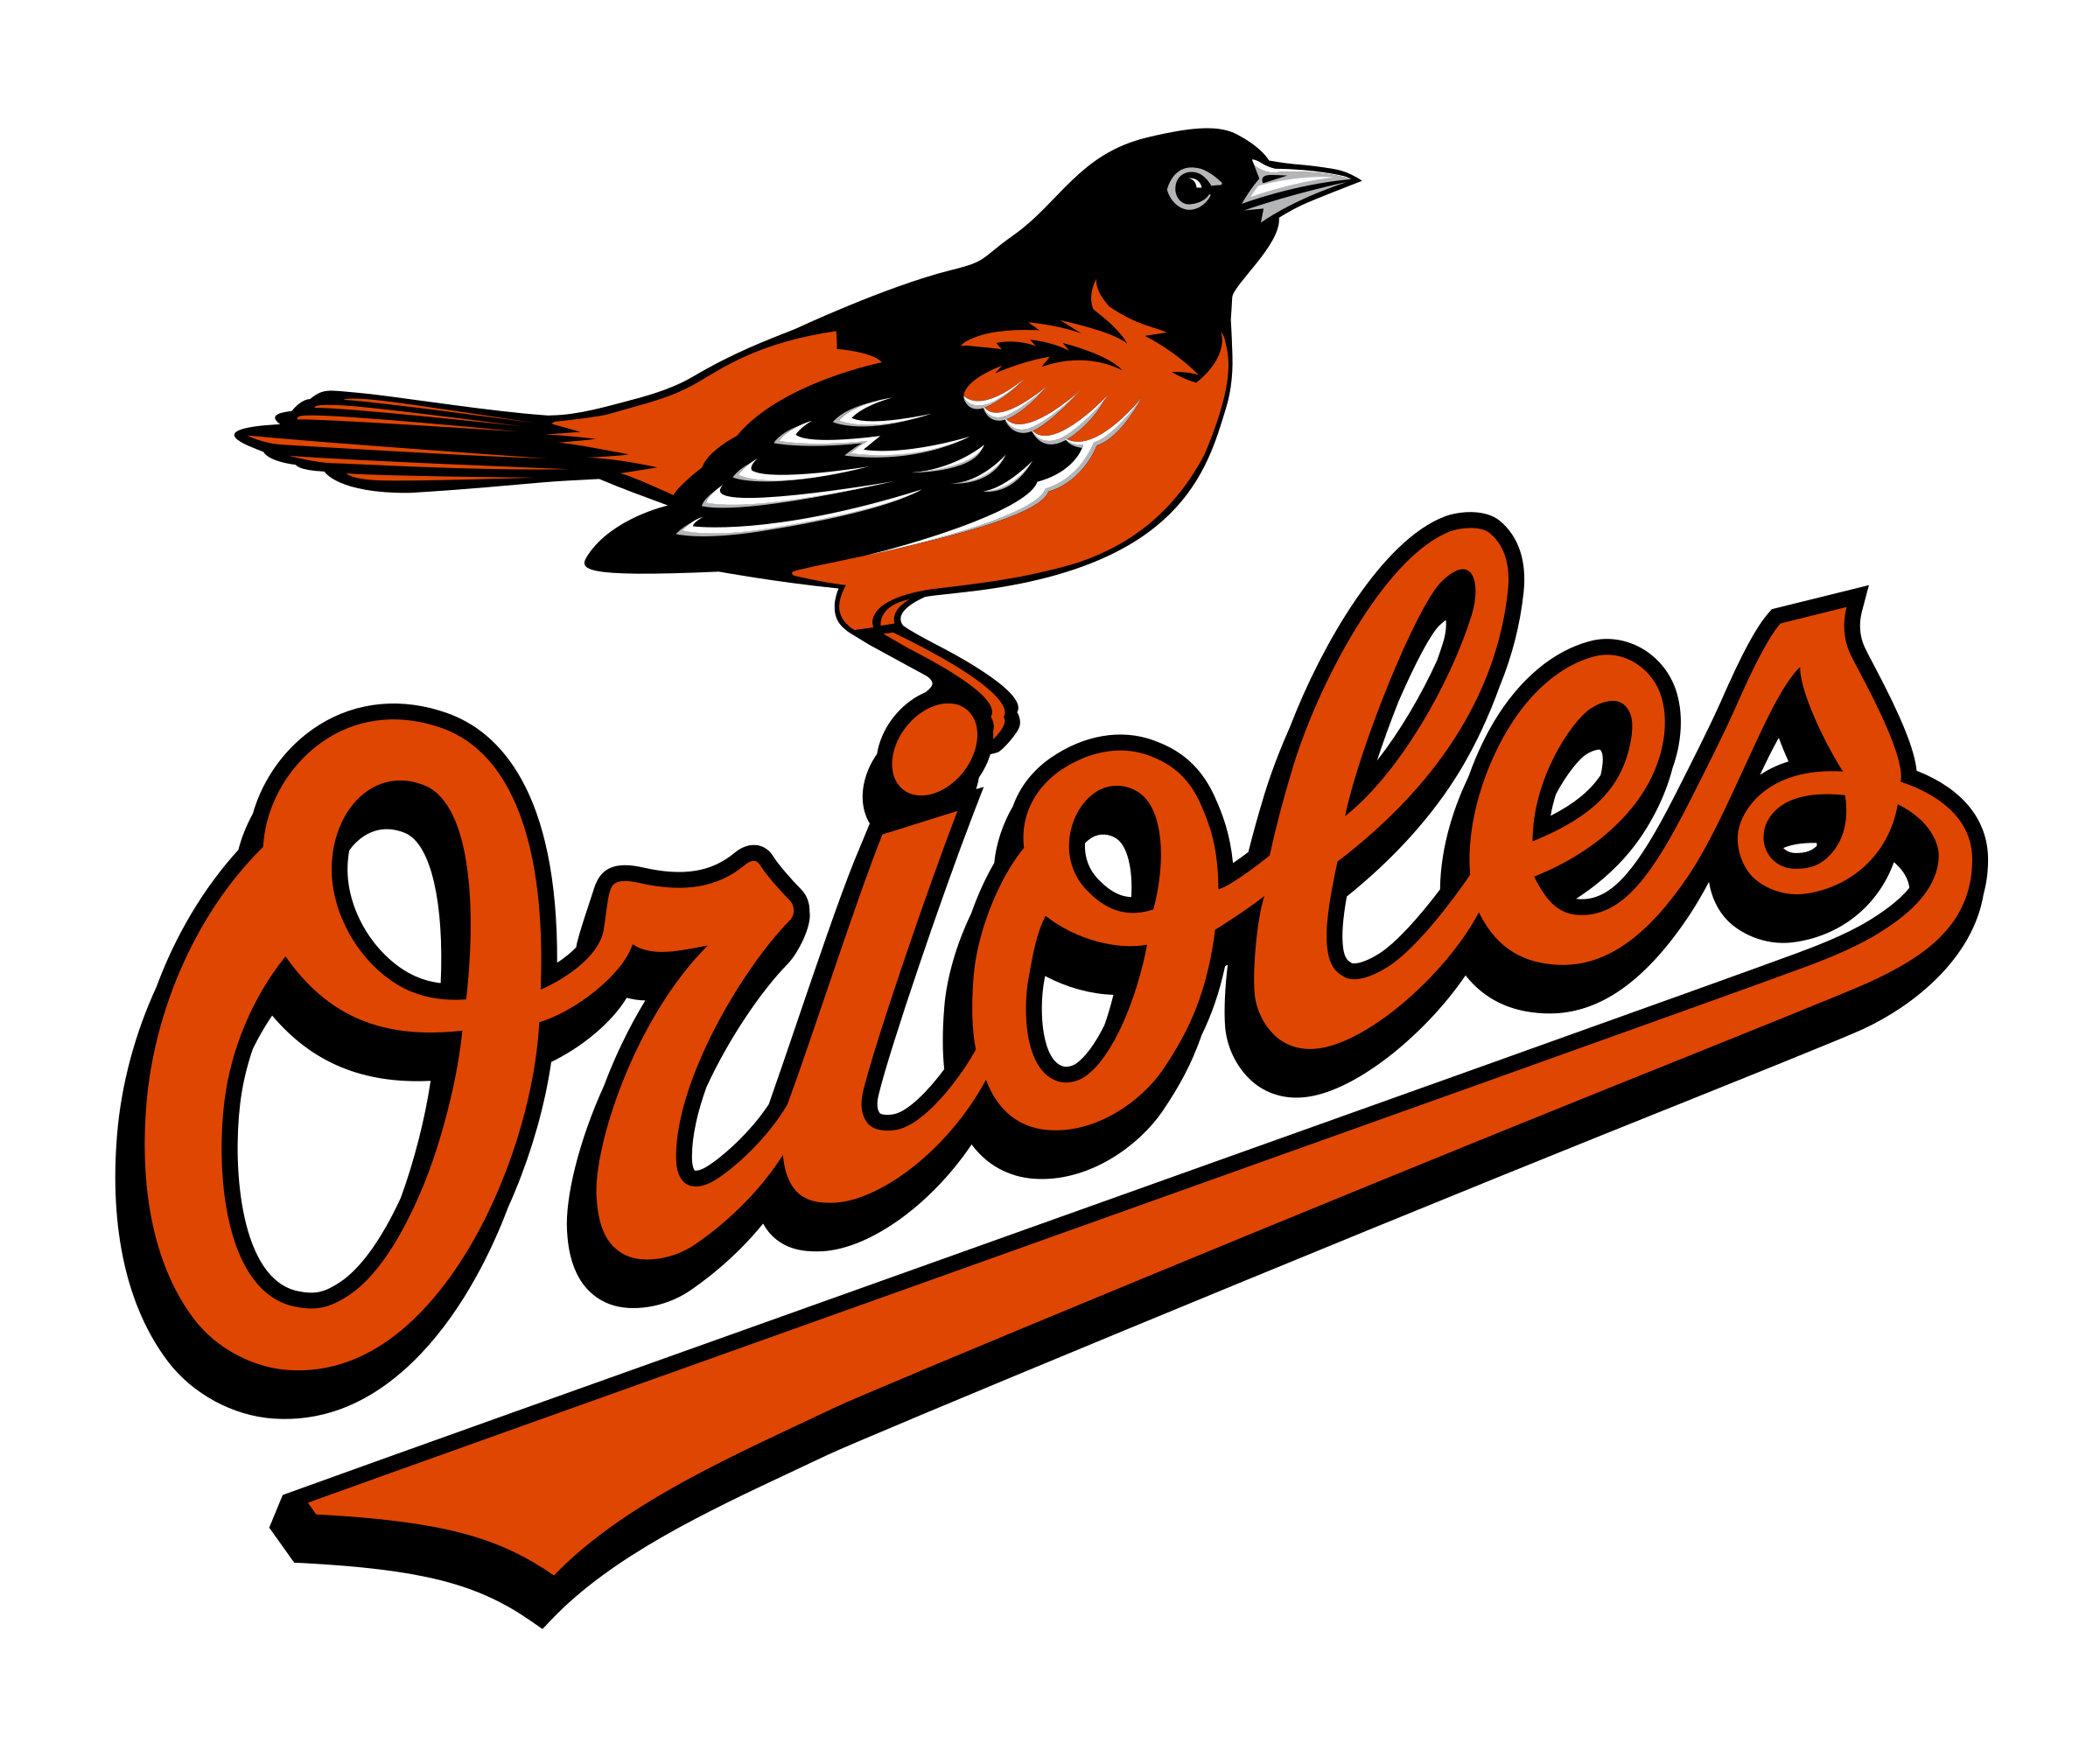 Orioles baseball clipart clip freeuse library Baltimore Orioles Logo PNG Transparent & SVG Vector - Freebie Supply clip freeuse library